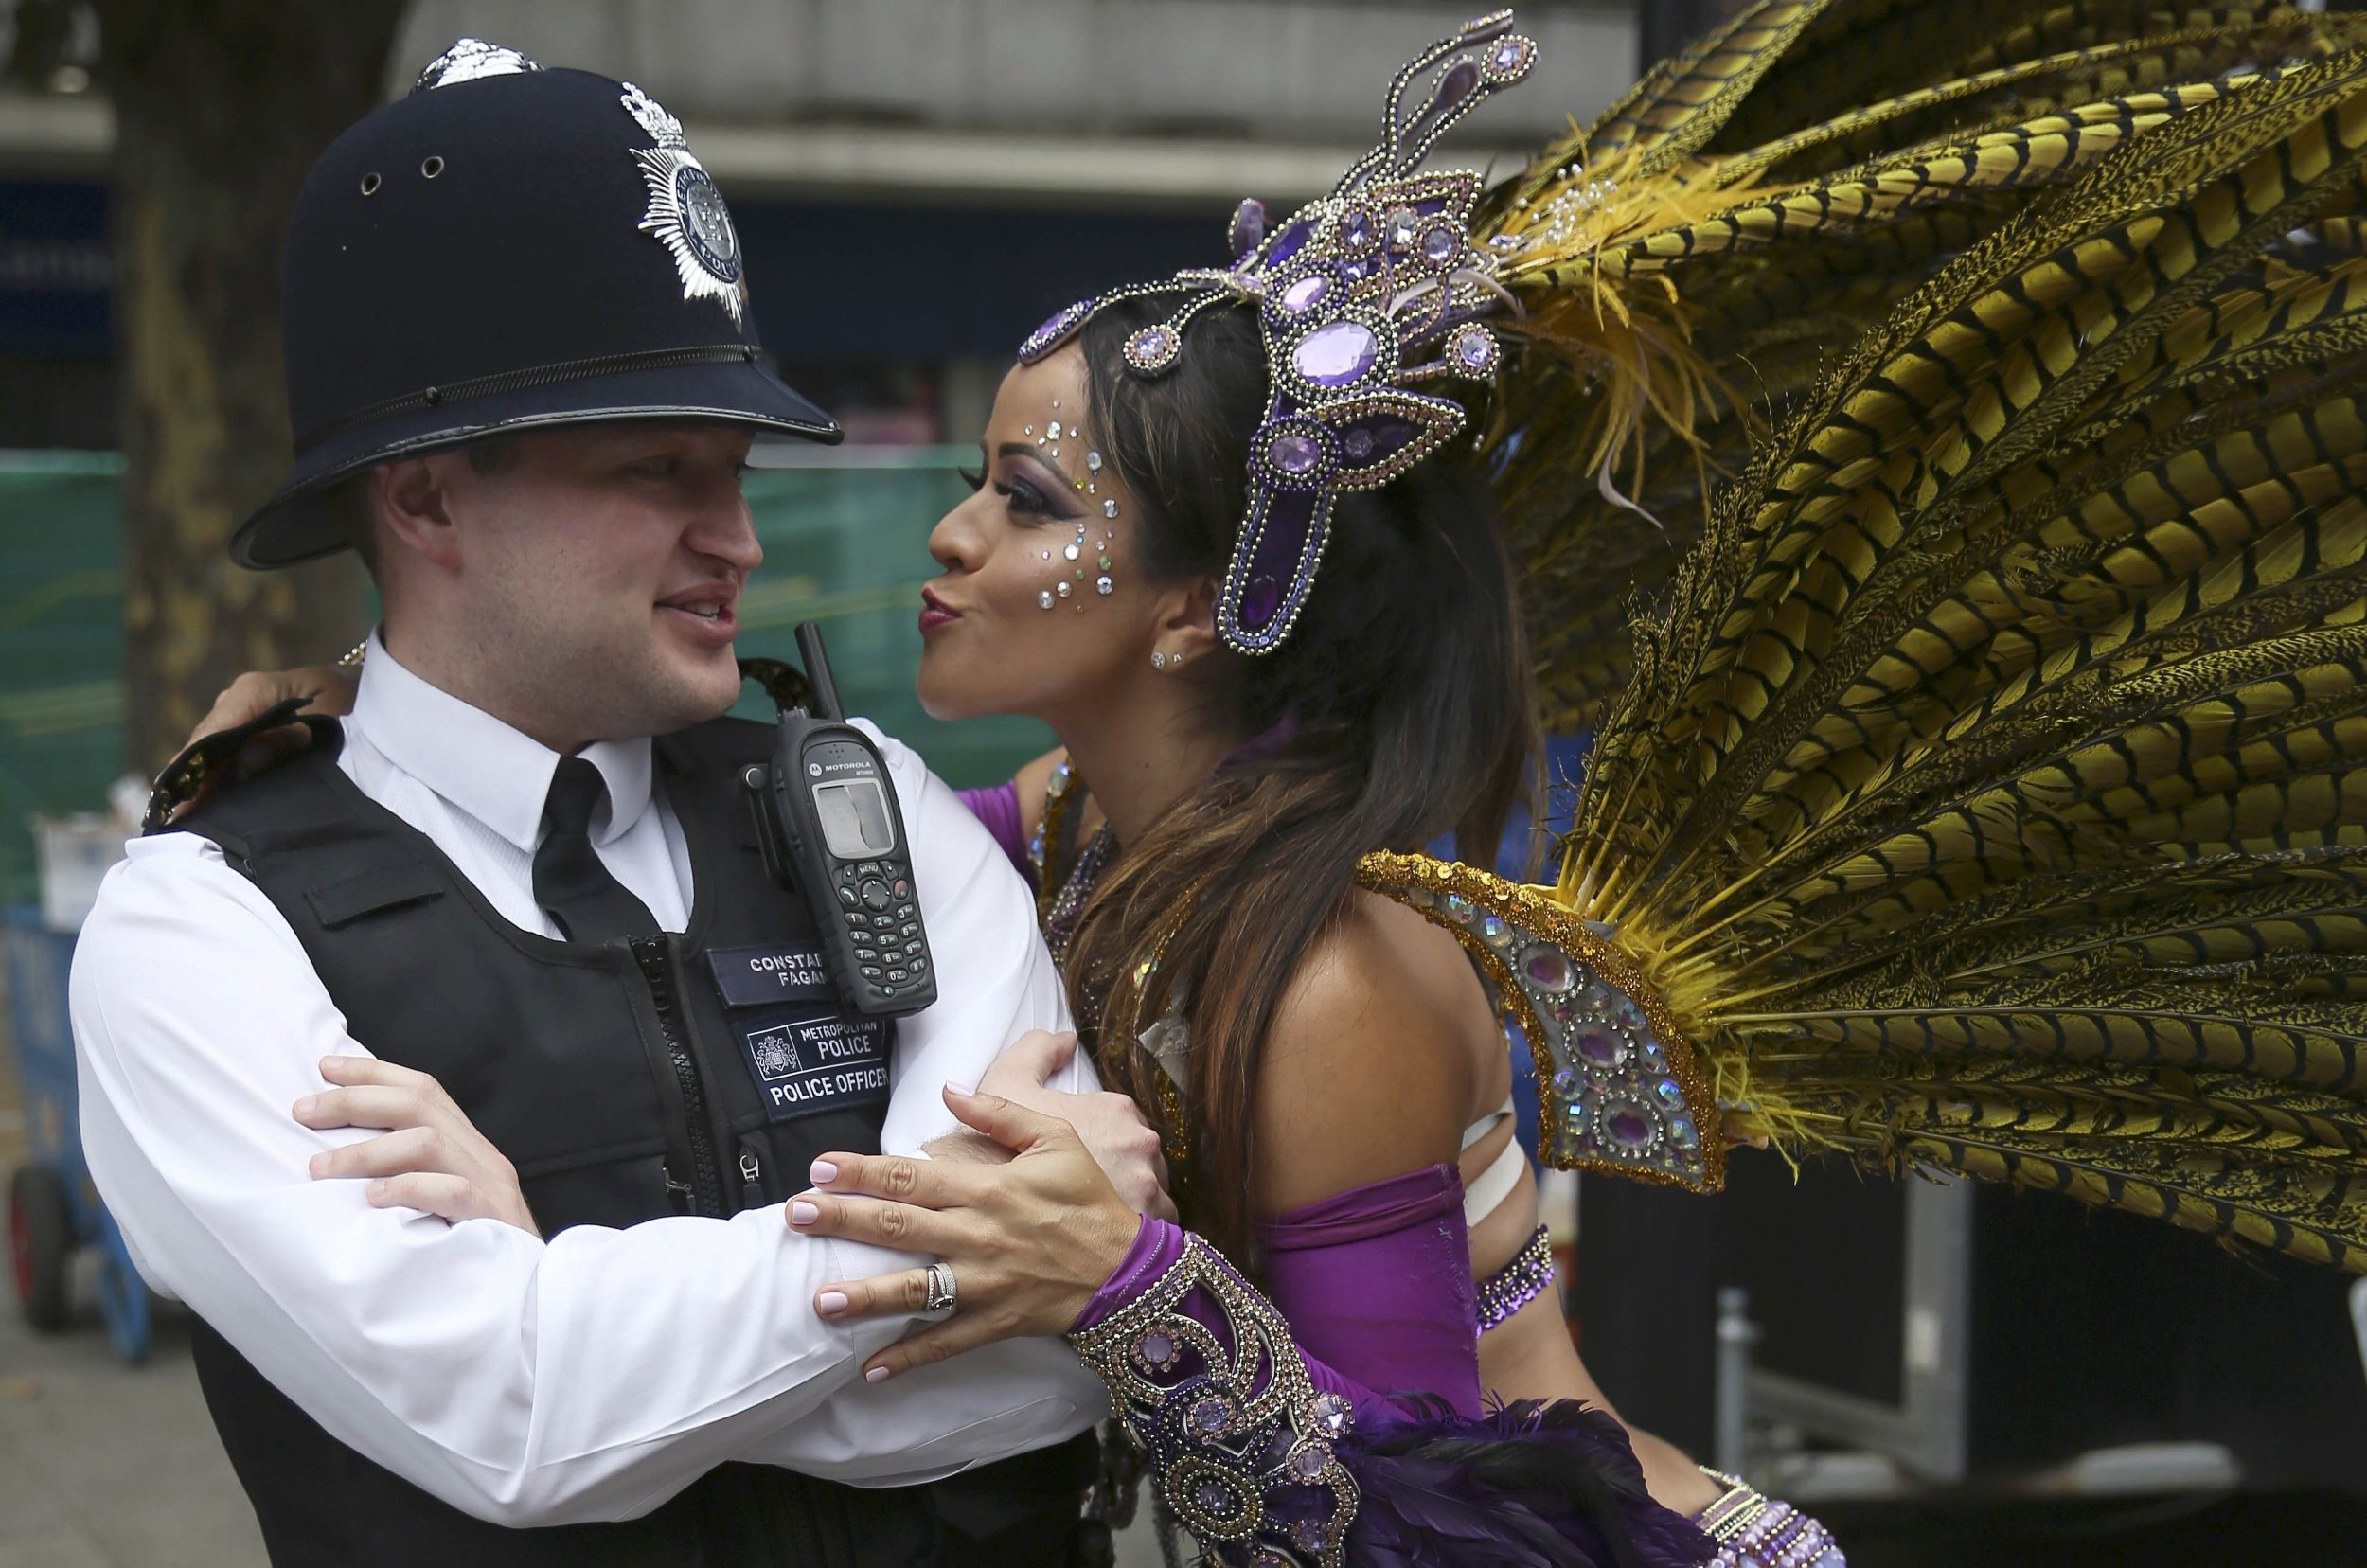 A performer dances with police during the Notting Hill Carnival in London, Britain August 29, 2016. REUTERS/Neil Hall